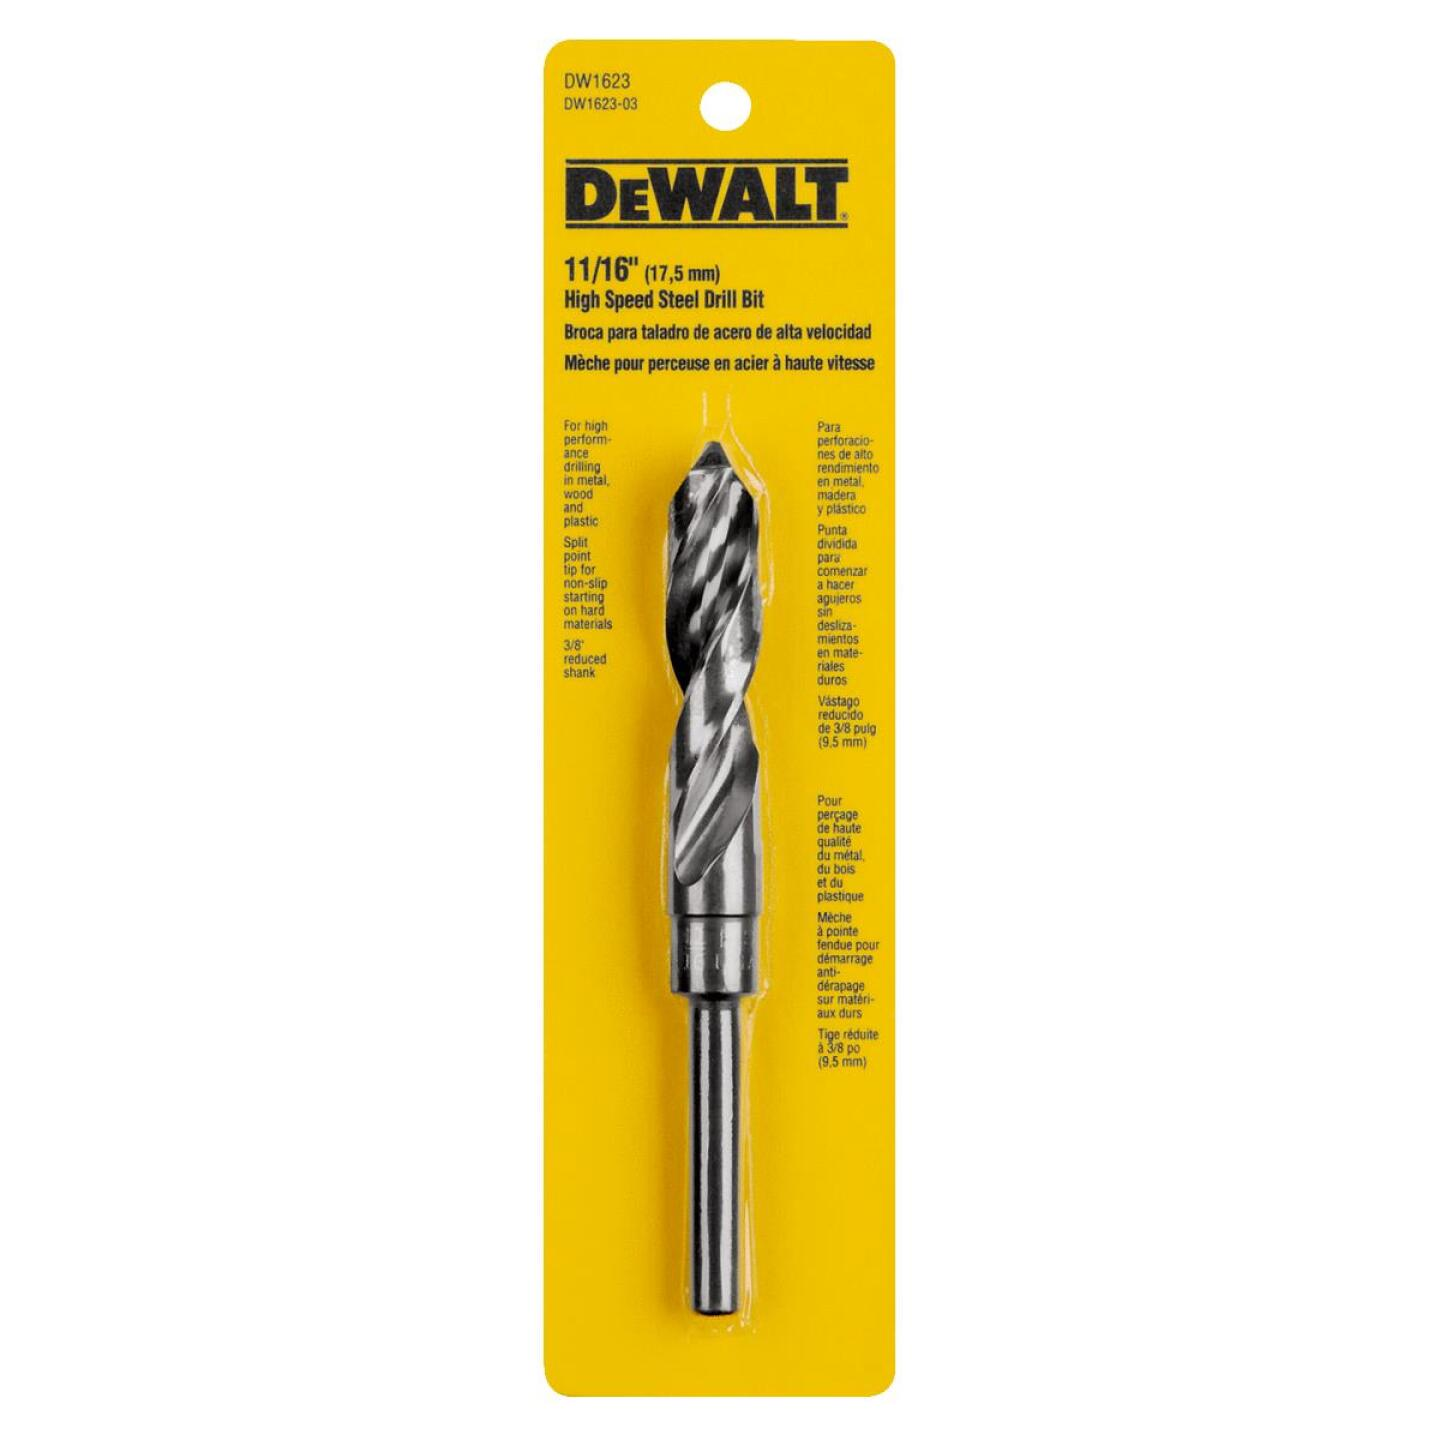 Irwin 11/16 In. Black Oxide Silver & Deming Drill Bit Image 1